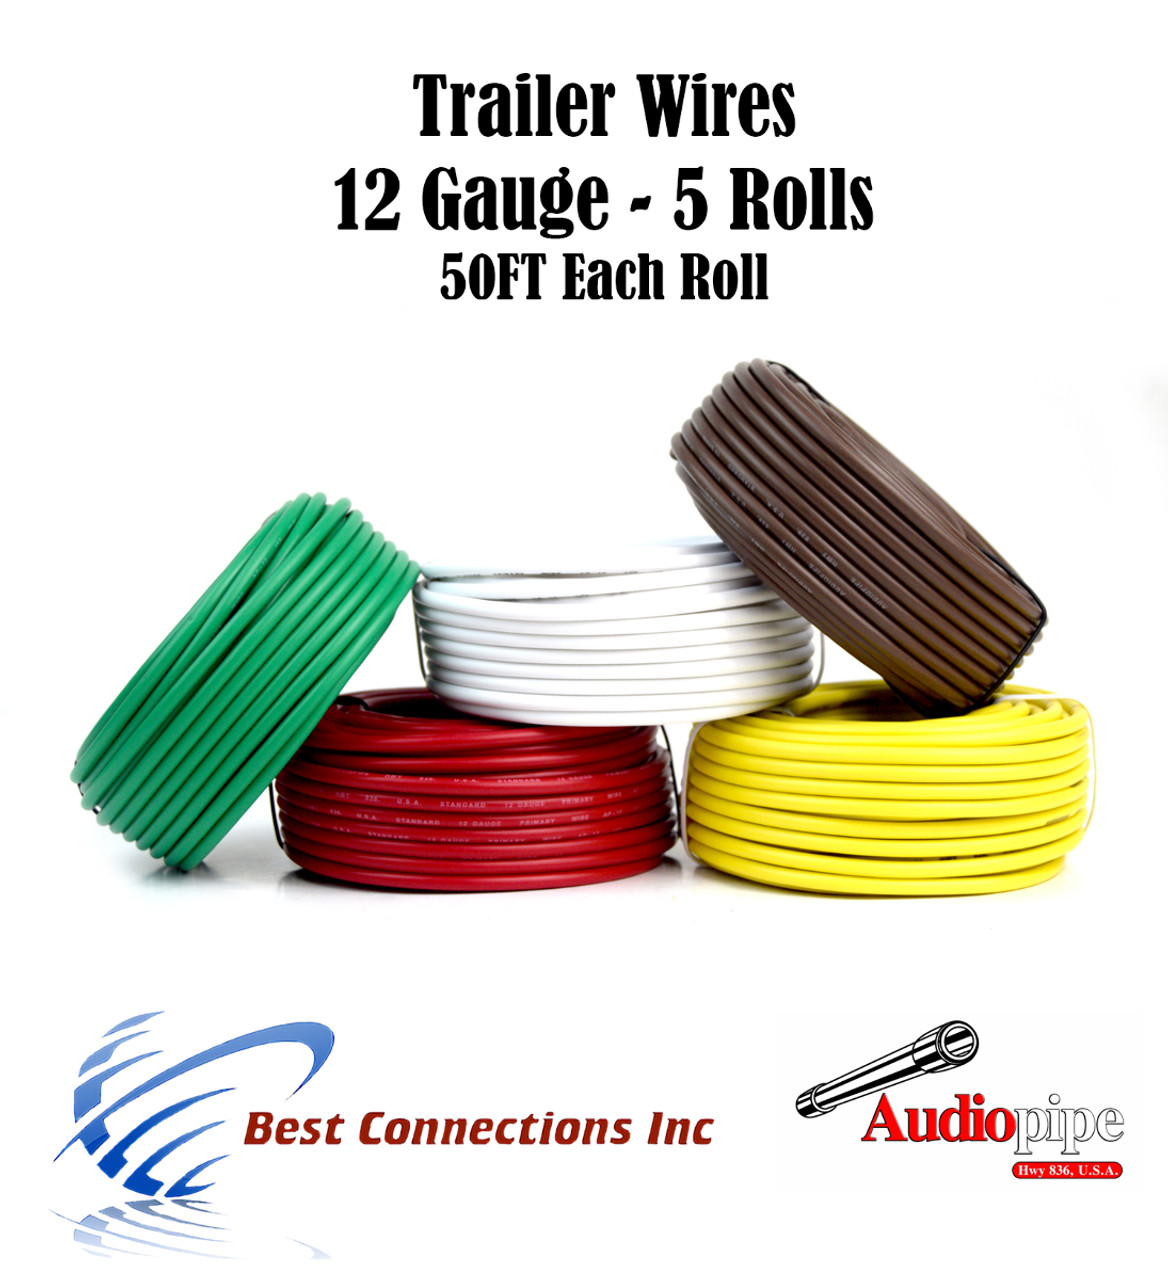 5 Way Trailer Wire Light Cable for Harness 50 FT Each Roll 12 Gauge ...